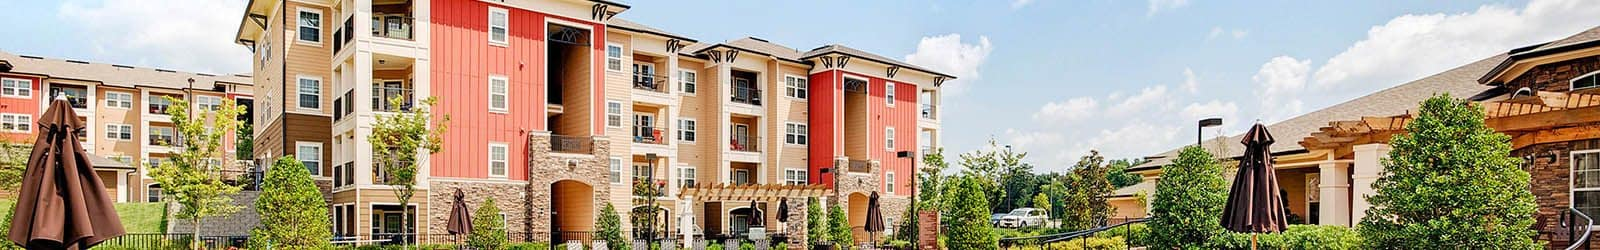 Contact our apartments in Ooltewah